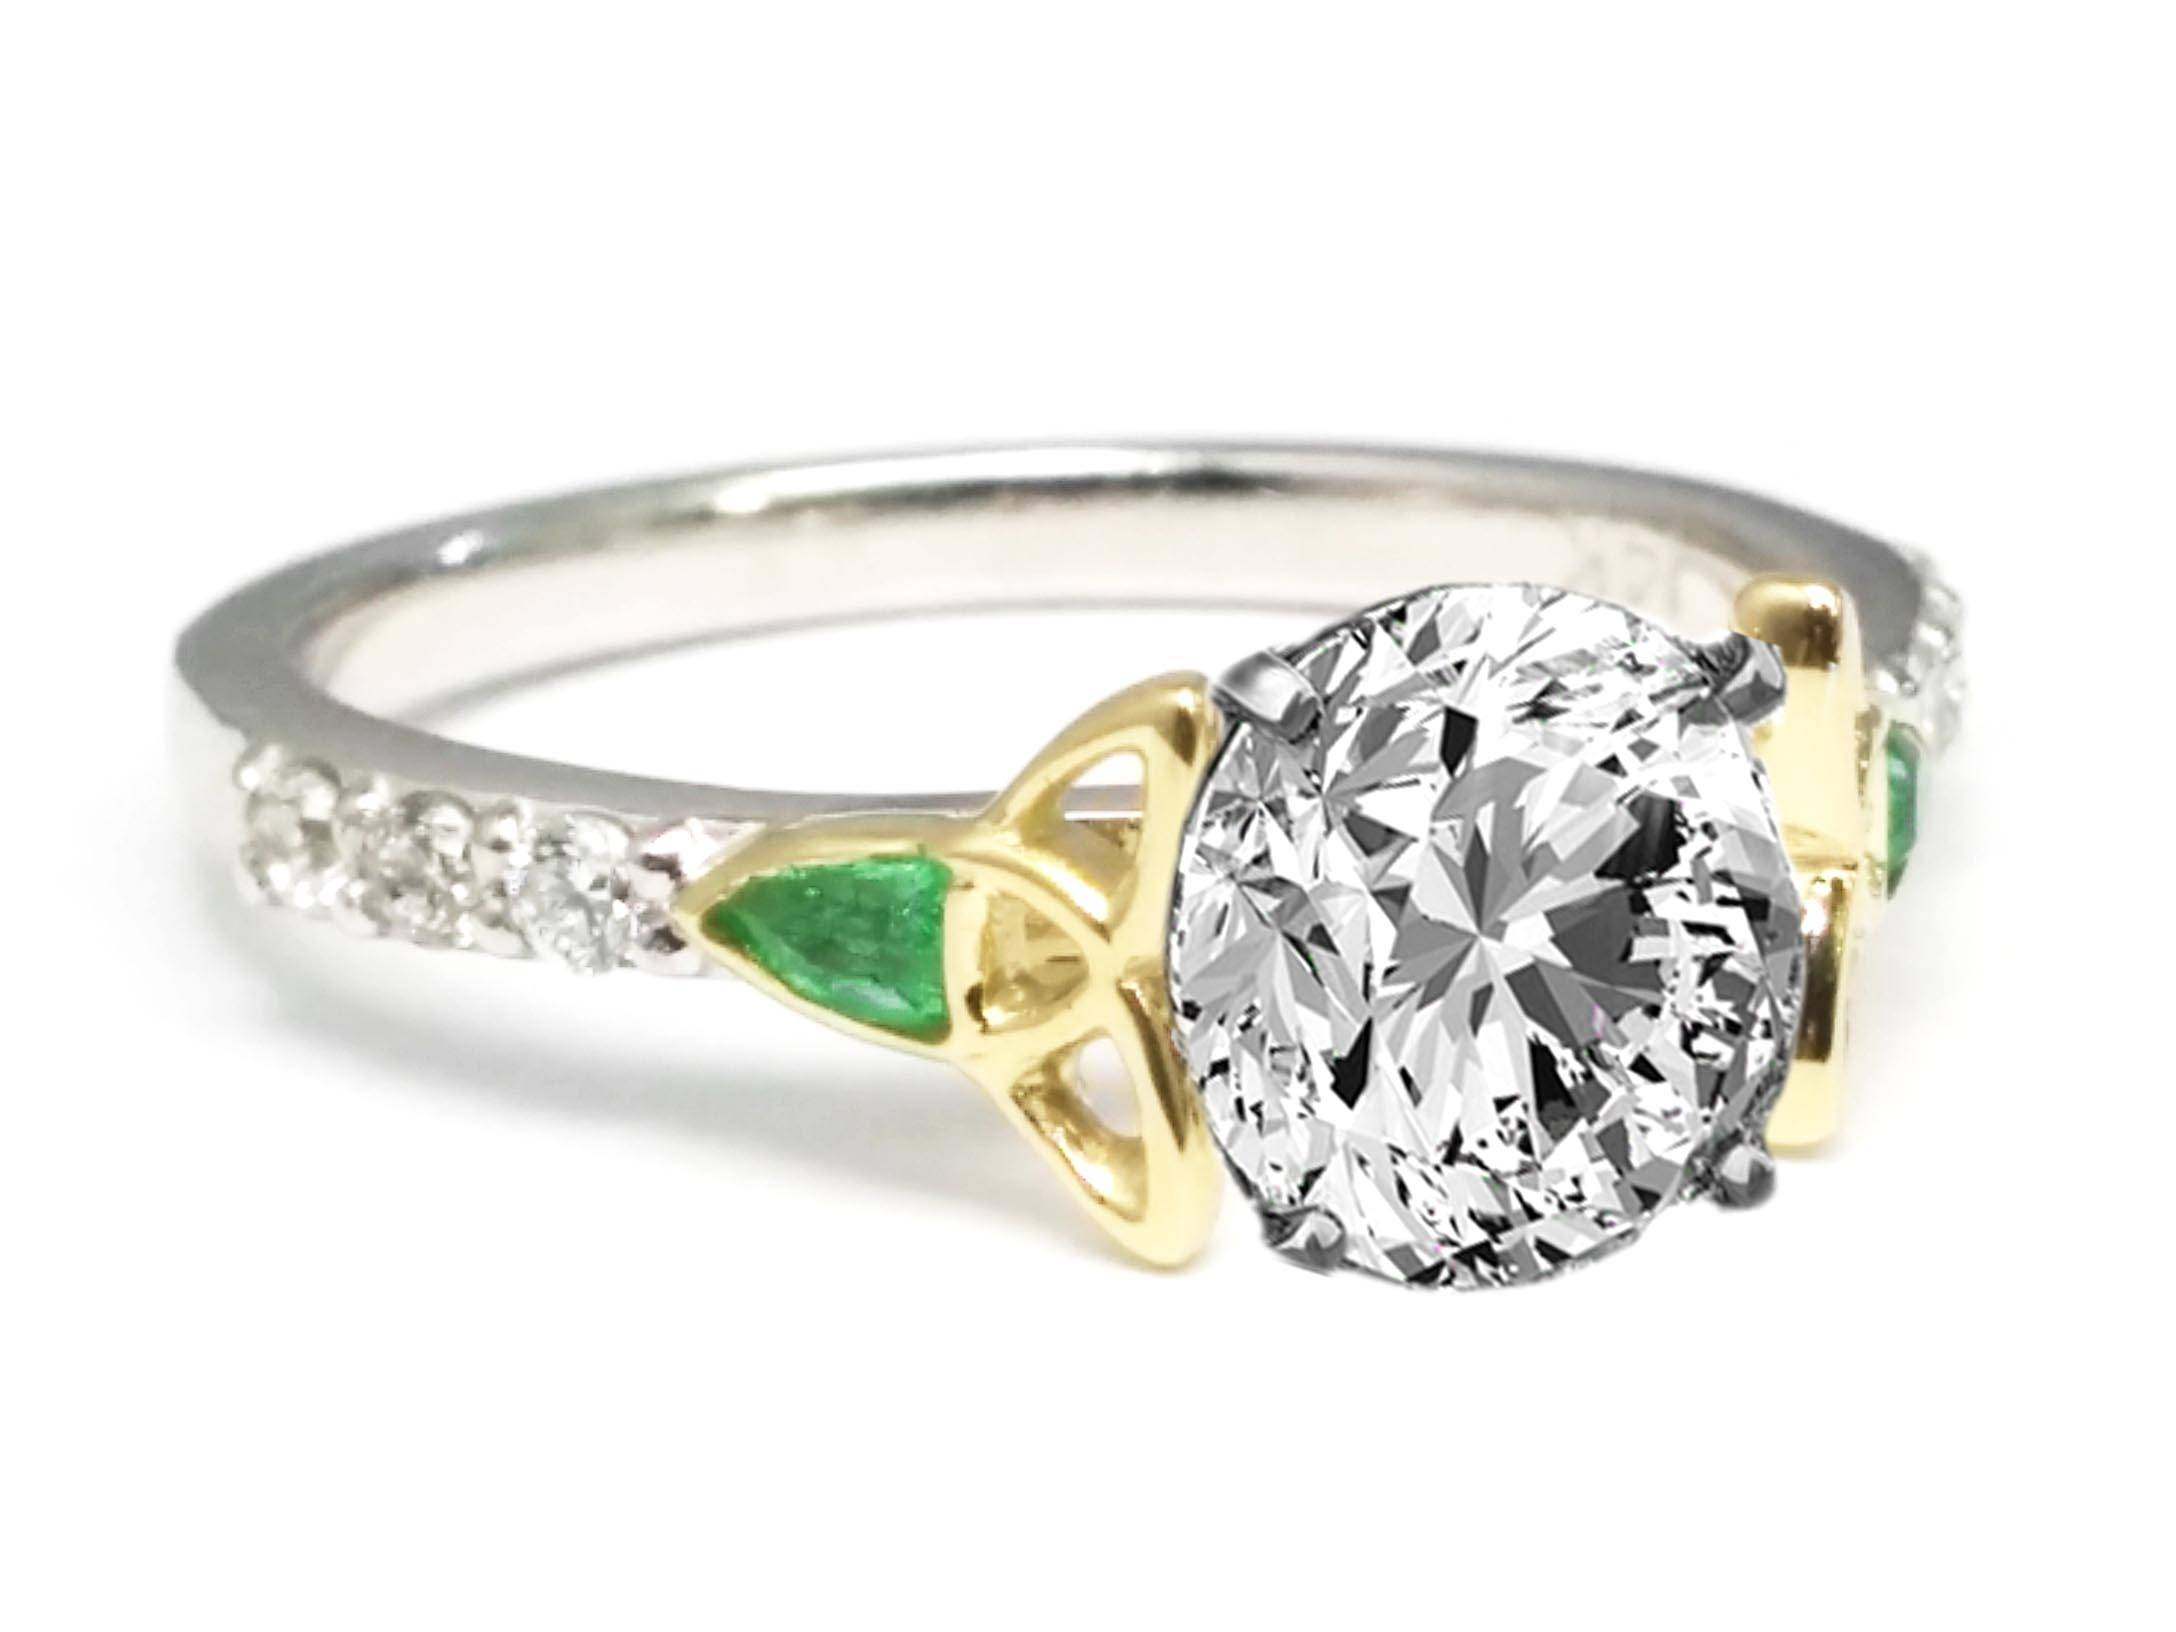 Celtic – Engagement Rings From Mdc Diamonds Nyc Intended For Vintage Celtic Engagement Rings (View 6 of 15)